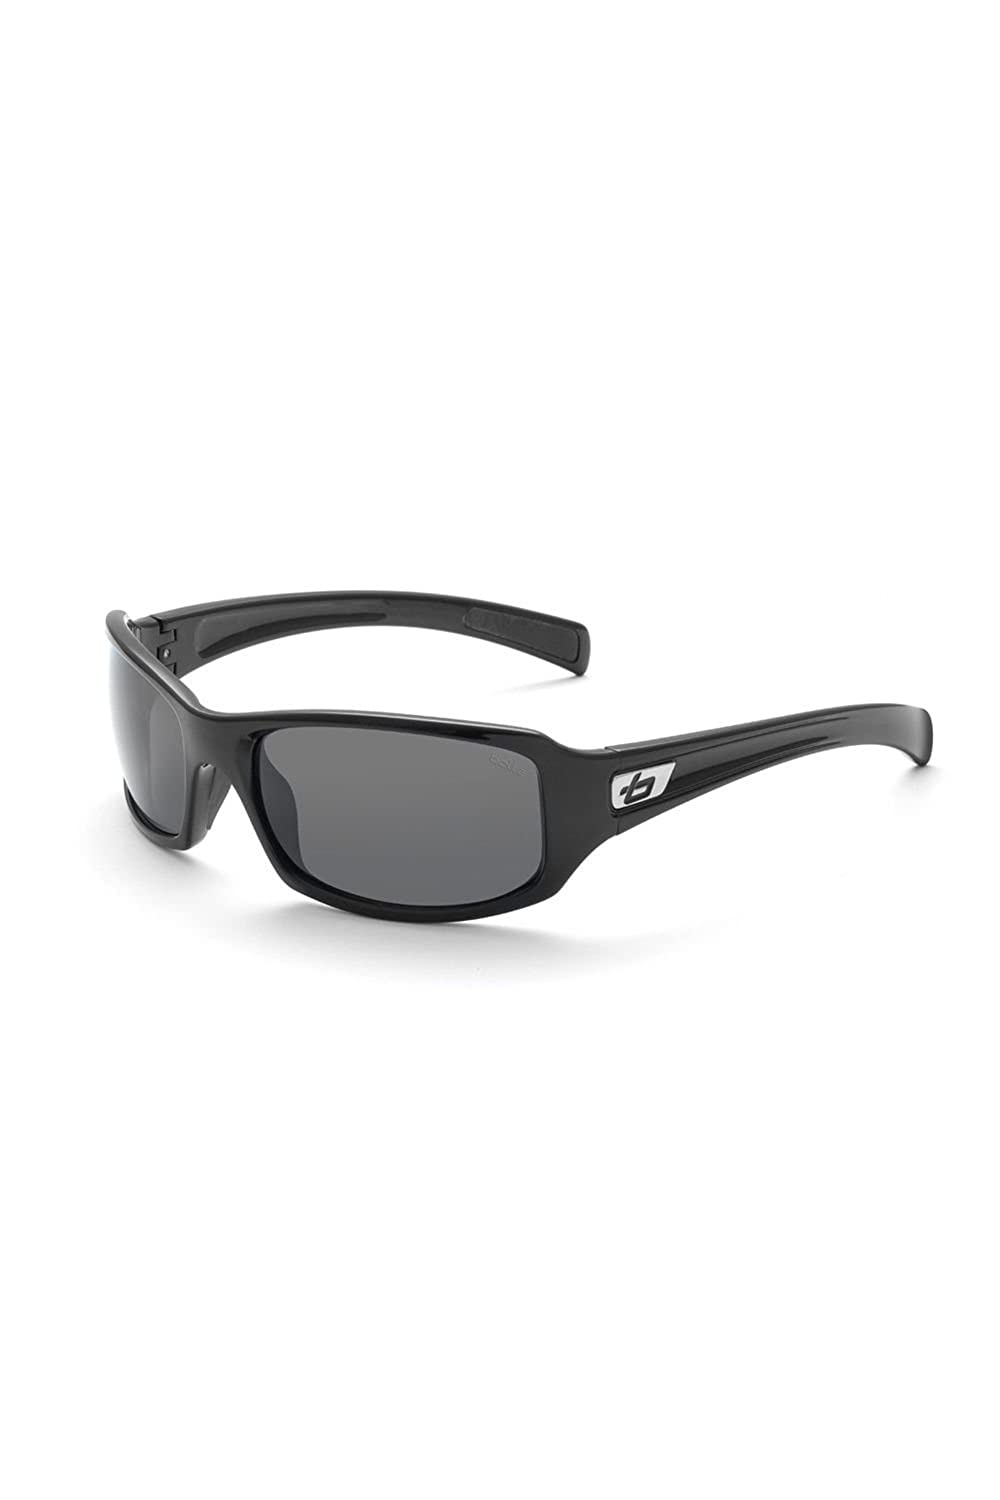 3d29dc0f16dbc Bolle 11389 Winslow Sunglasses 62: Amazon.co.uk: Clothing